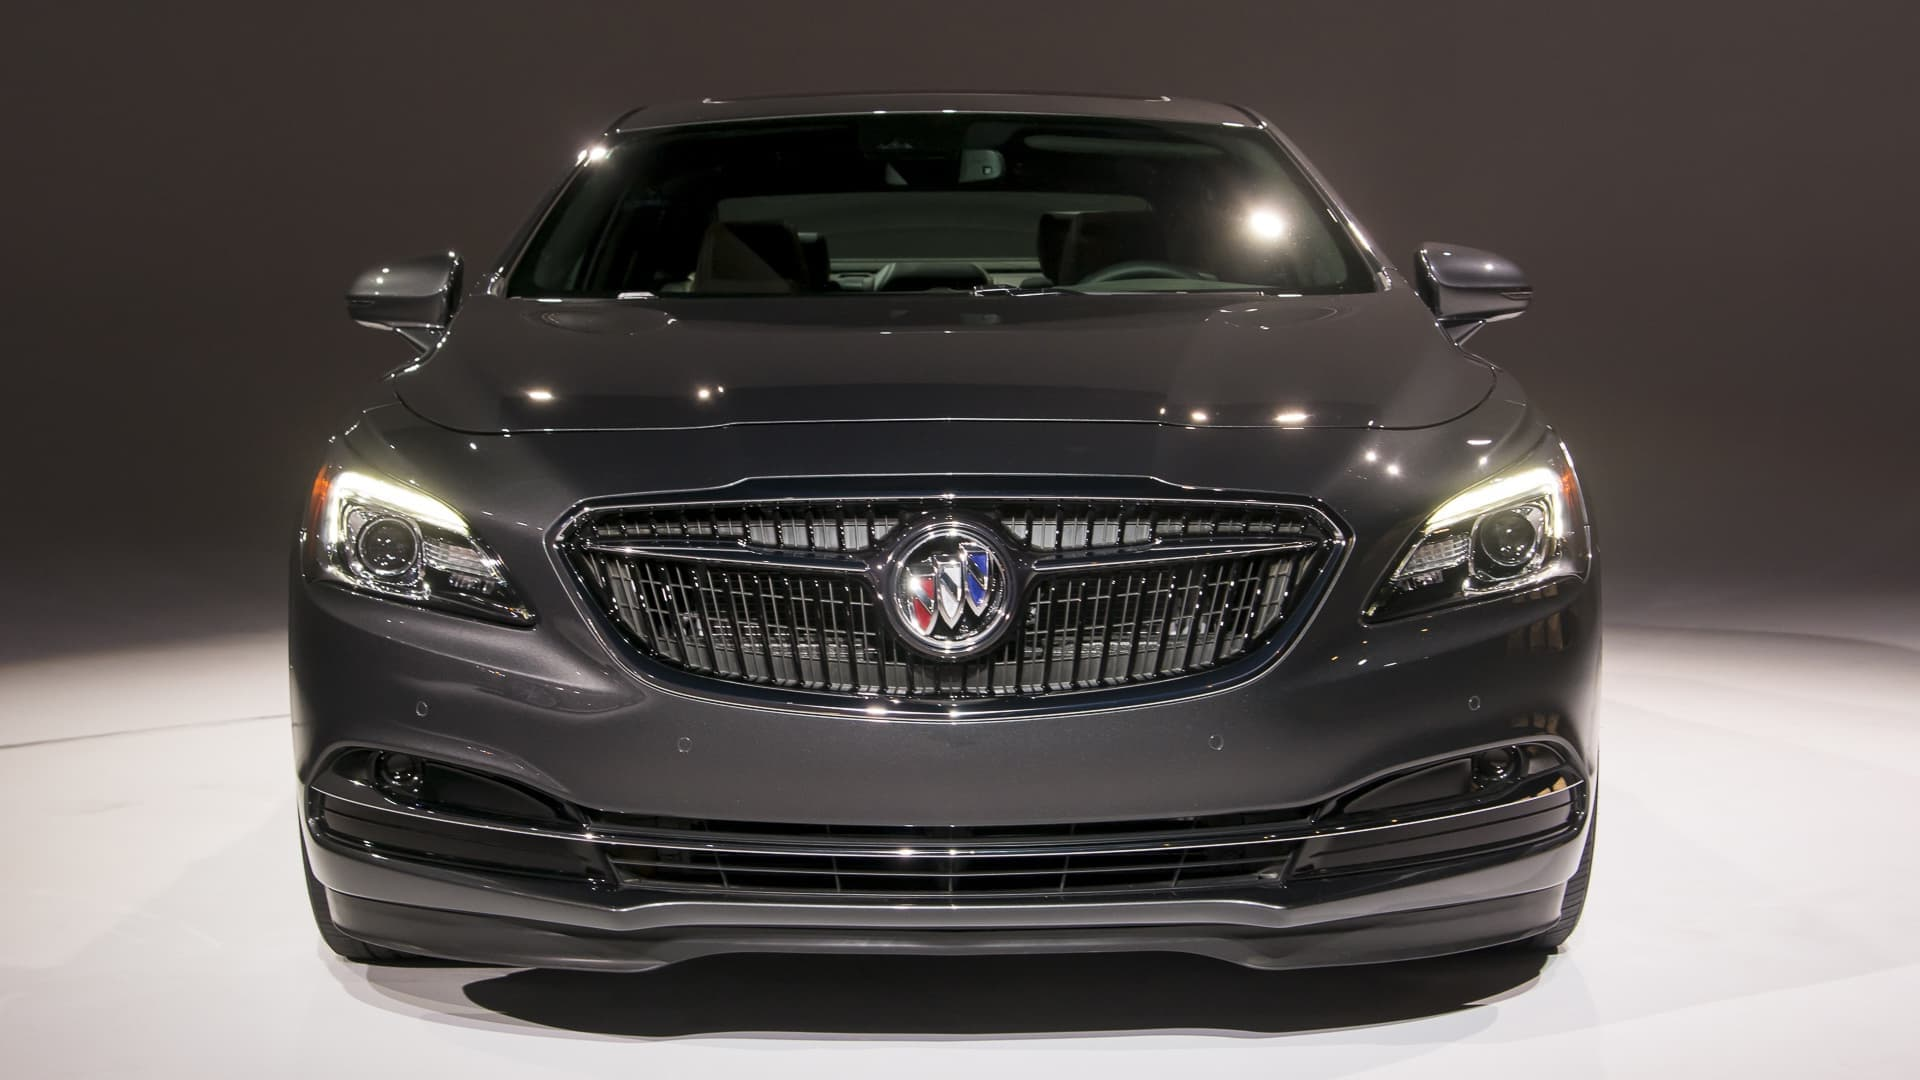 Buick Lacrosse 2017 >> 2017 Buick LaCrosse wallpapers HD High Quality Download